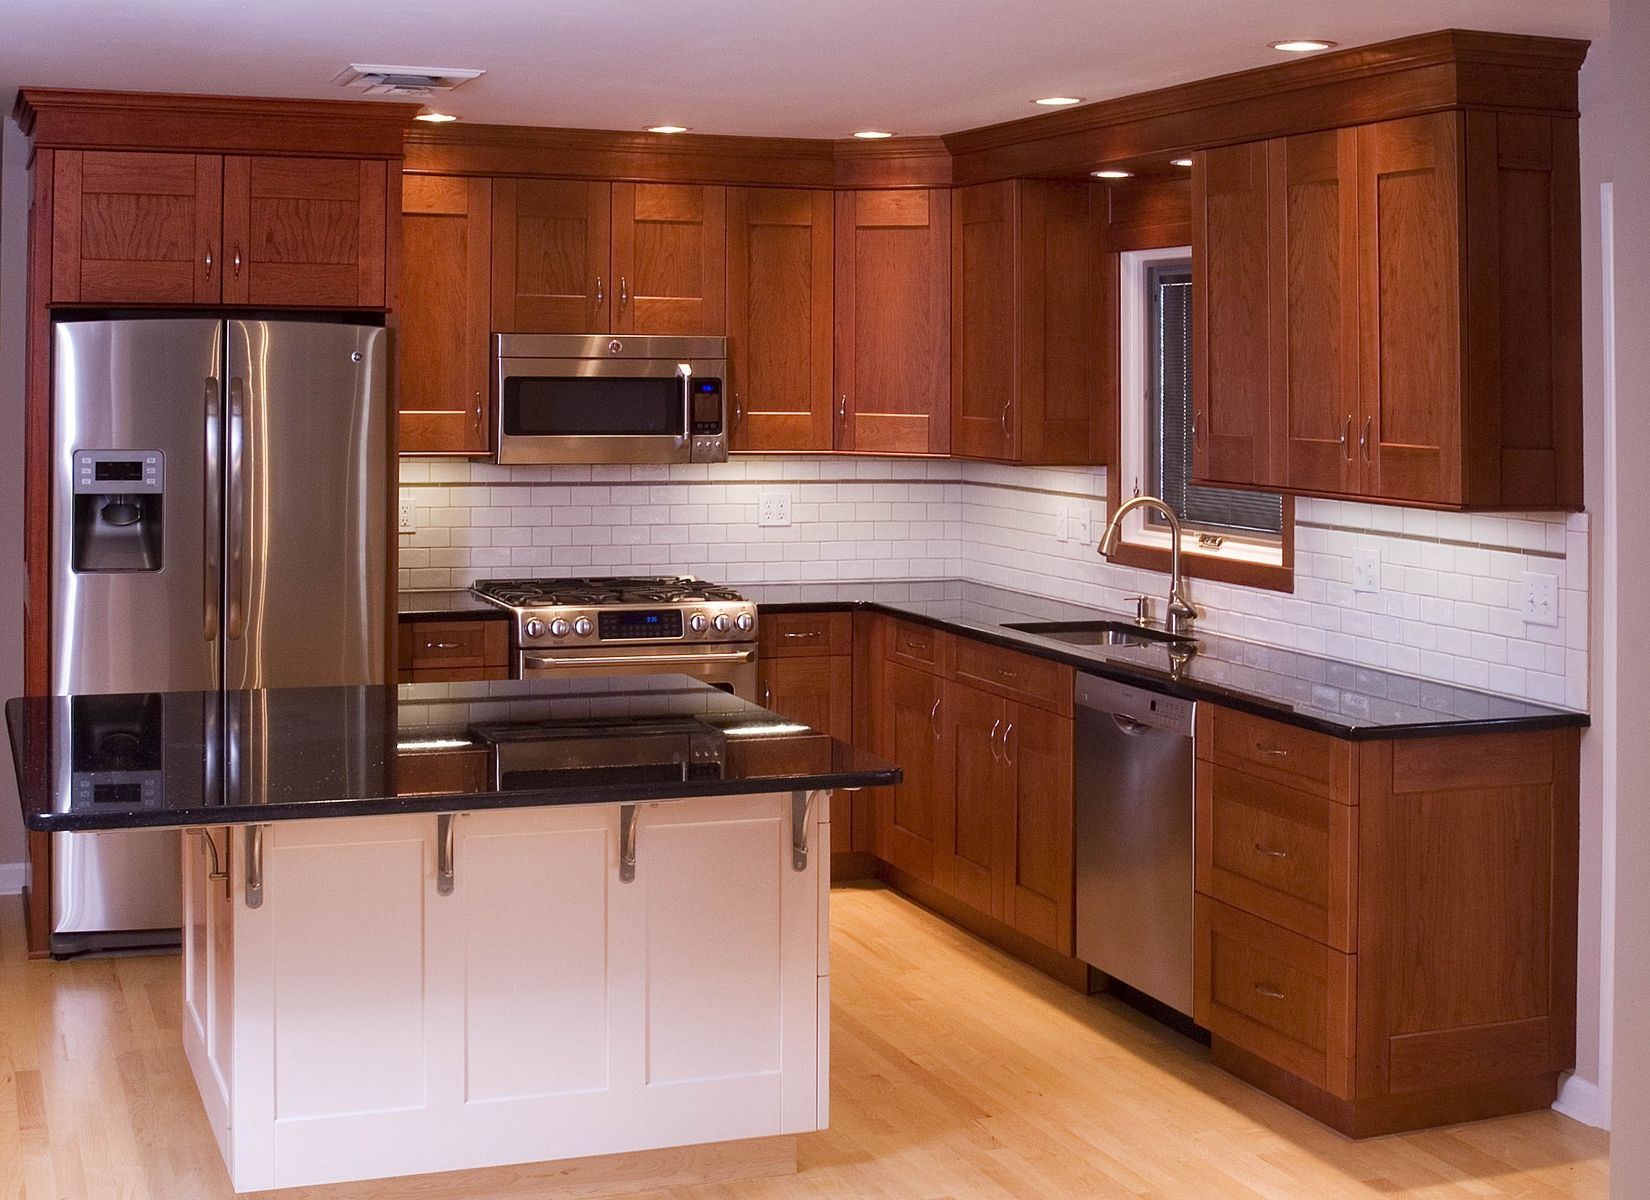 custom made cherry kitchen cabinets - Cherry Kitchen Cabinets